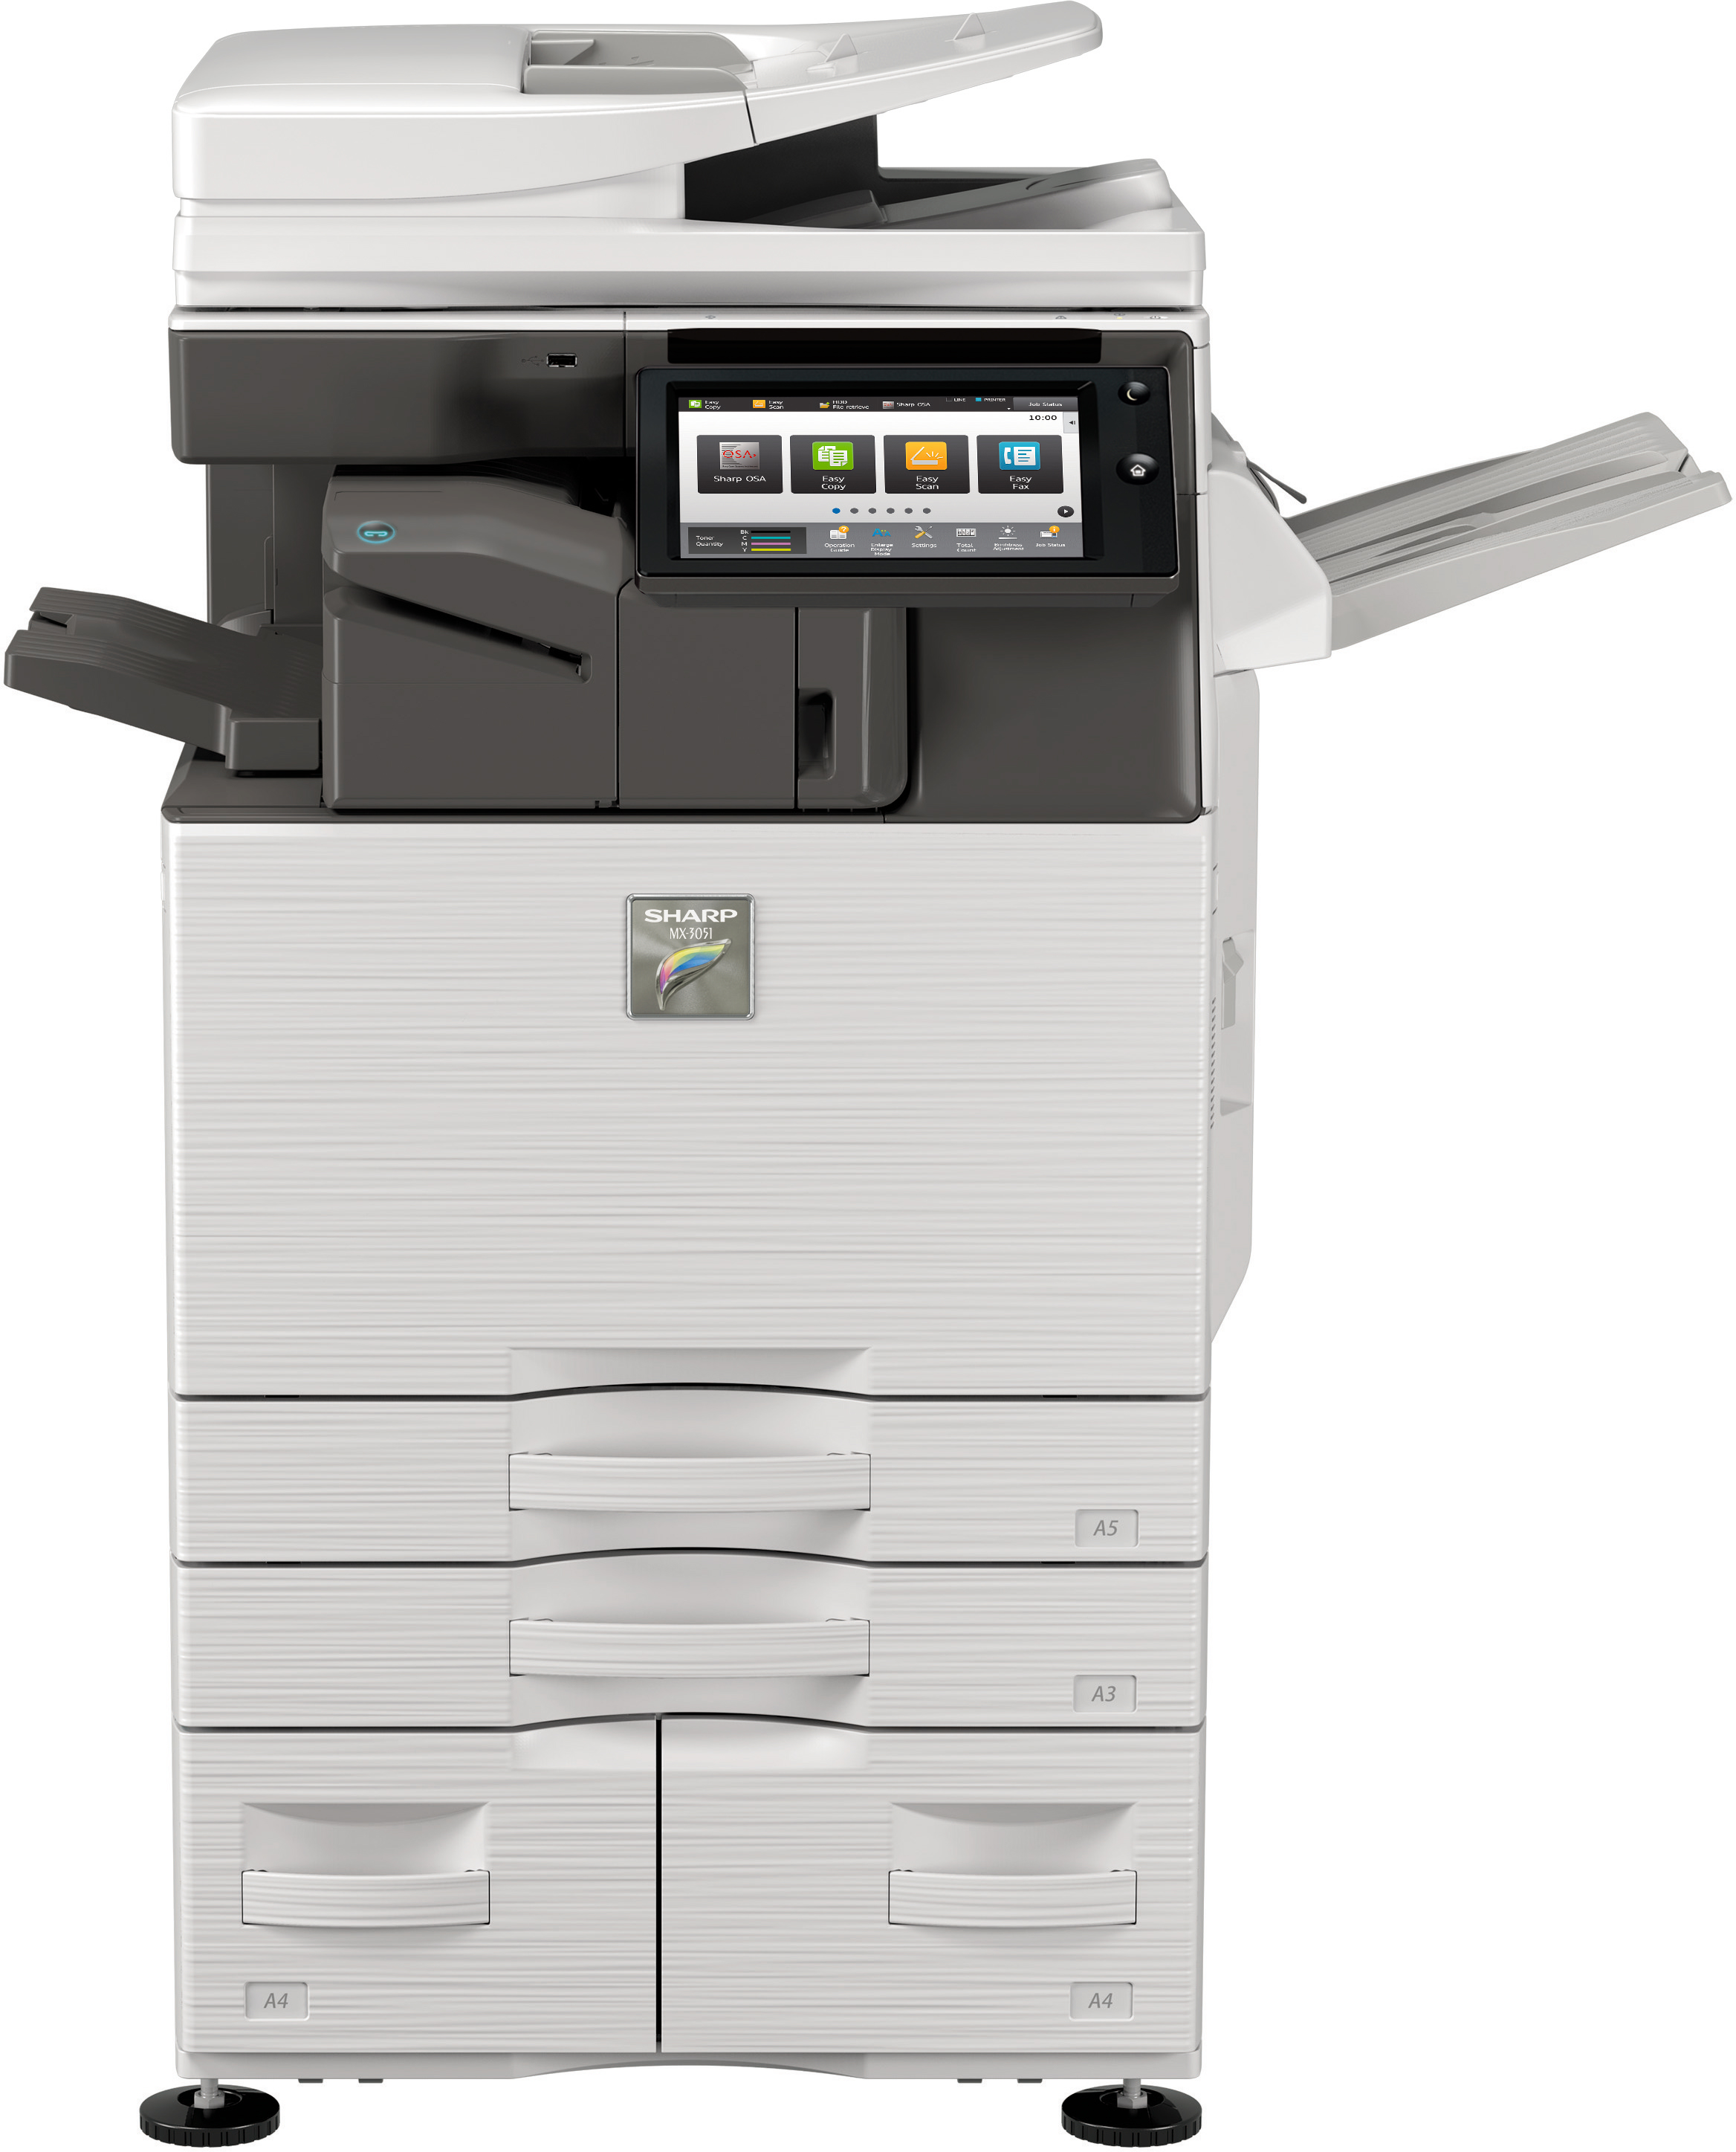 Sharp MX-2651N Color MFP